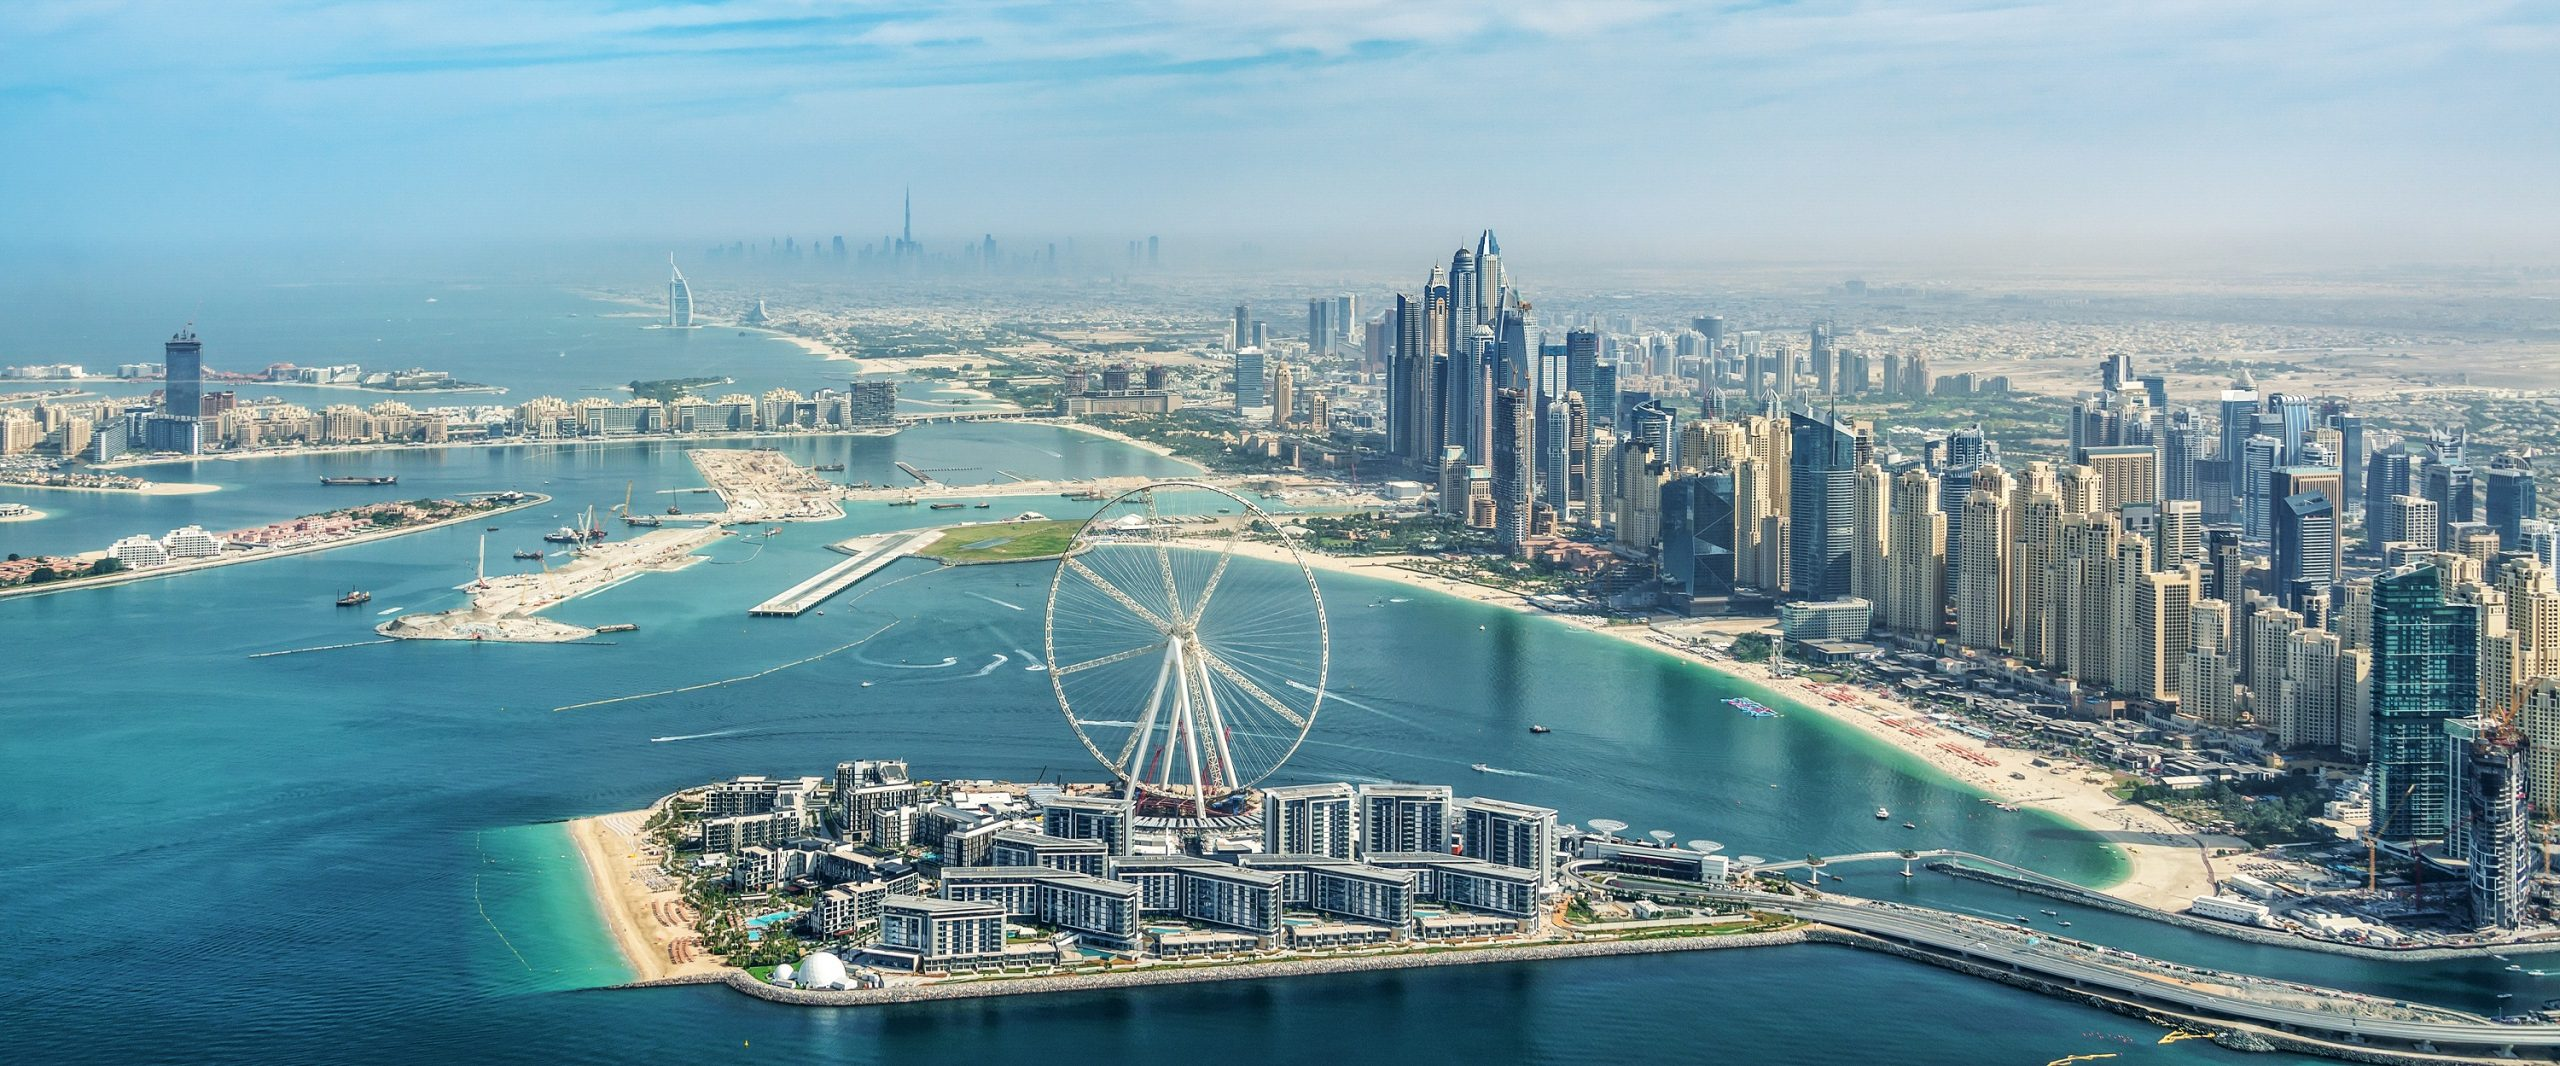 View of Dubai skyline from Seawings Seaplane